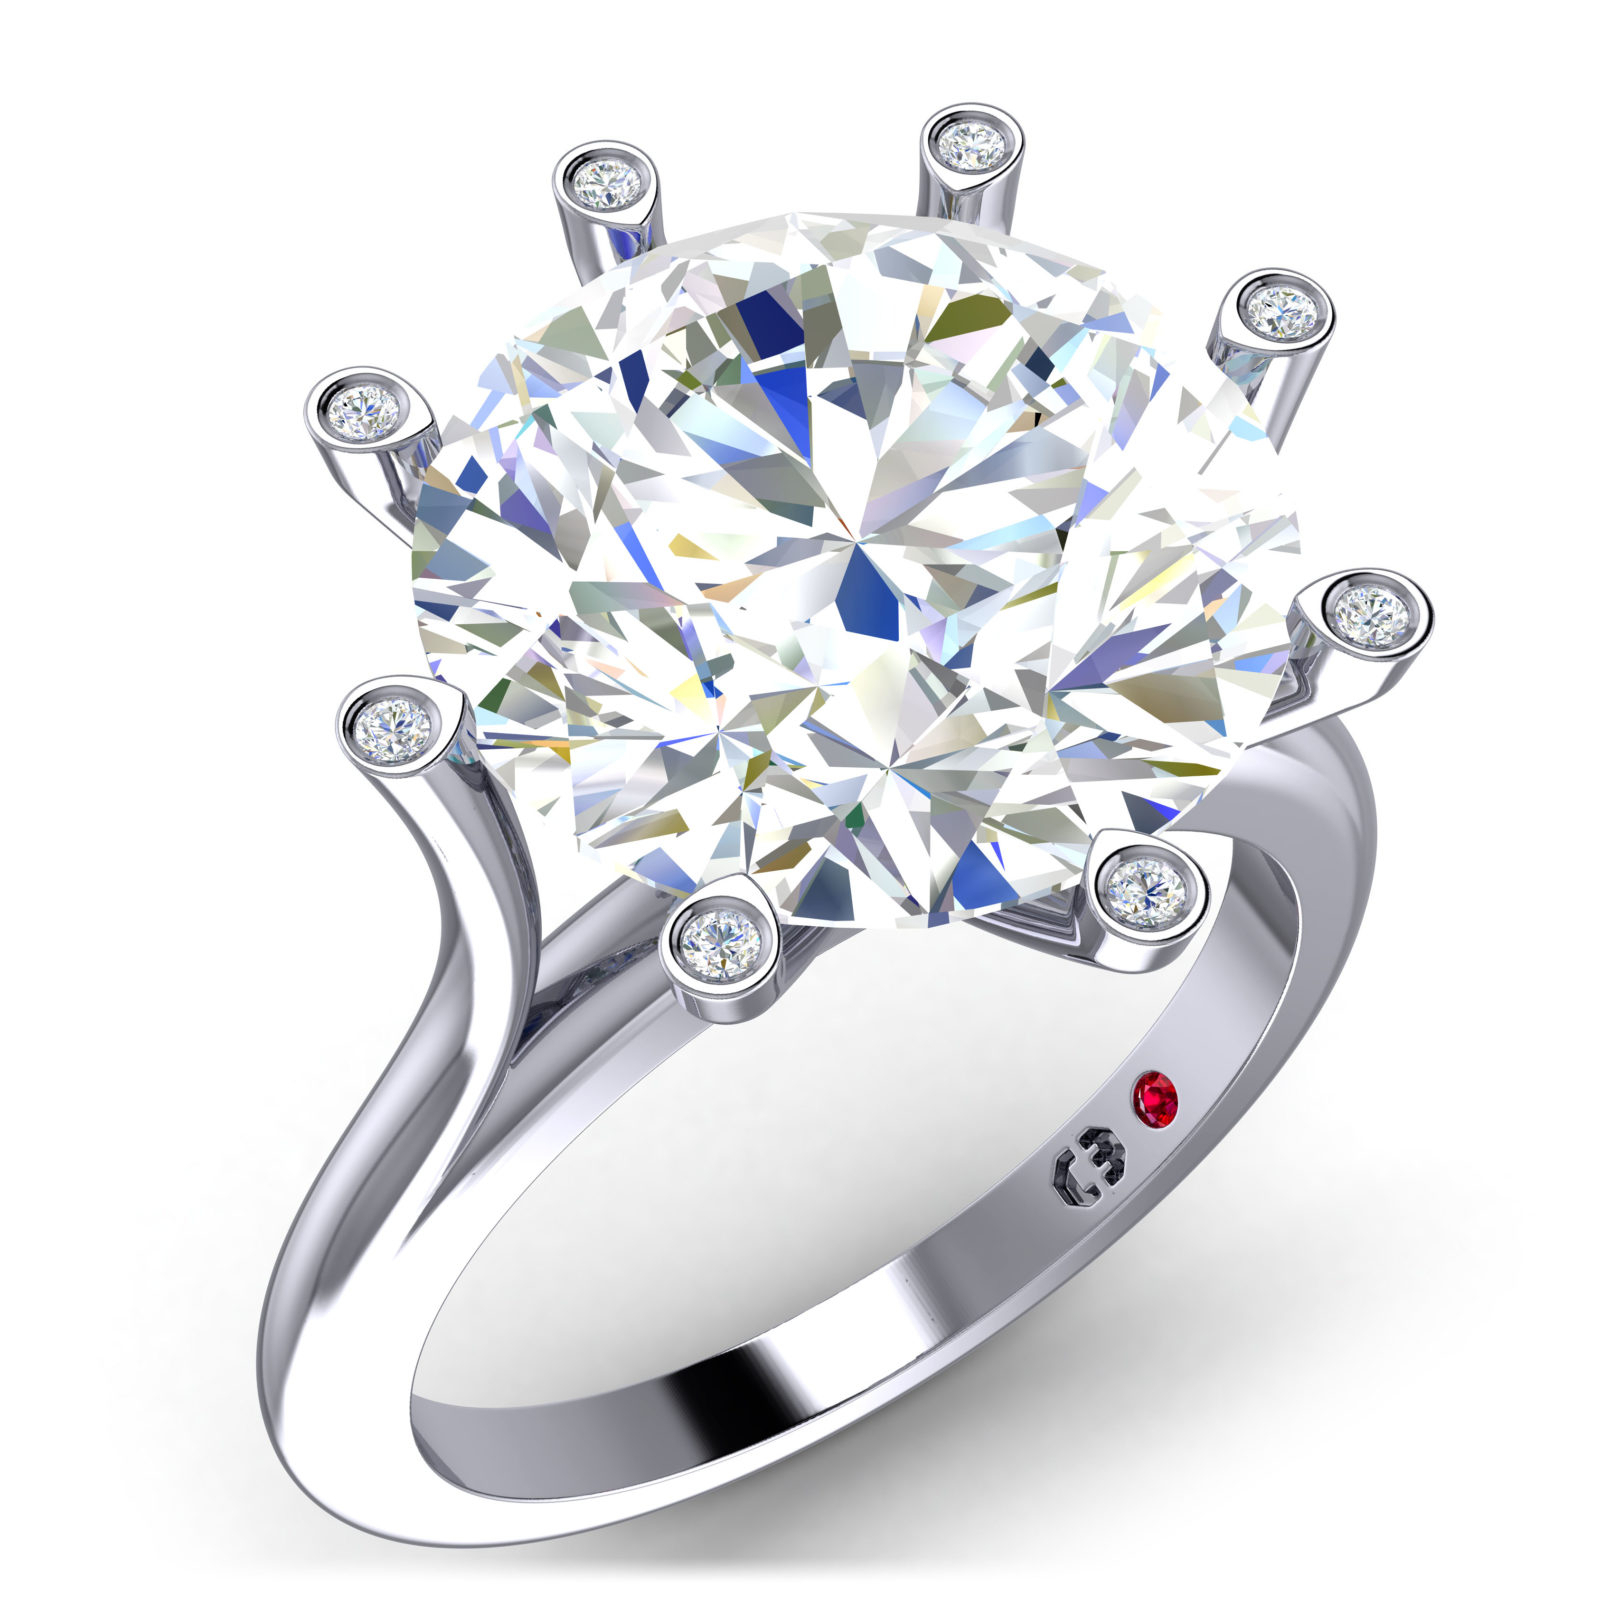 Brilliant Love Ring – Cassandra Mamone With Regard To Brilliant Love Diamond Engagement Rings (View 8 of 25)